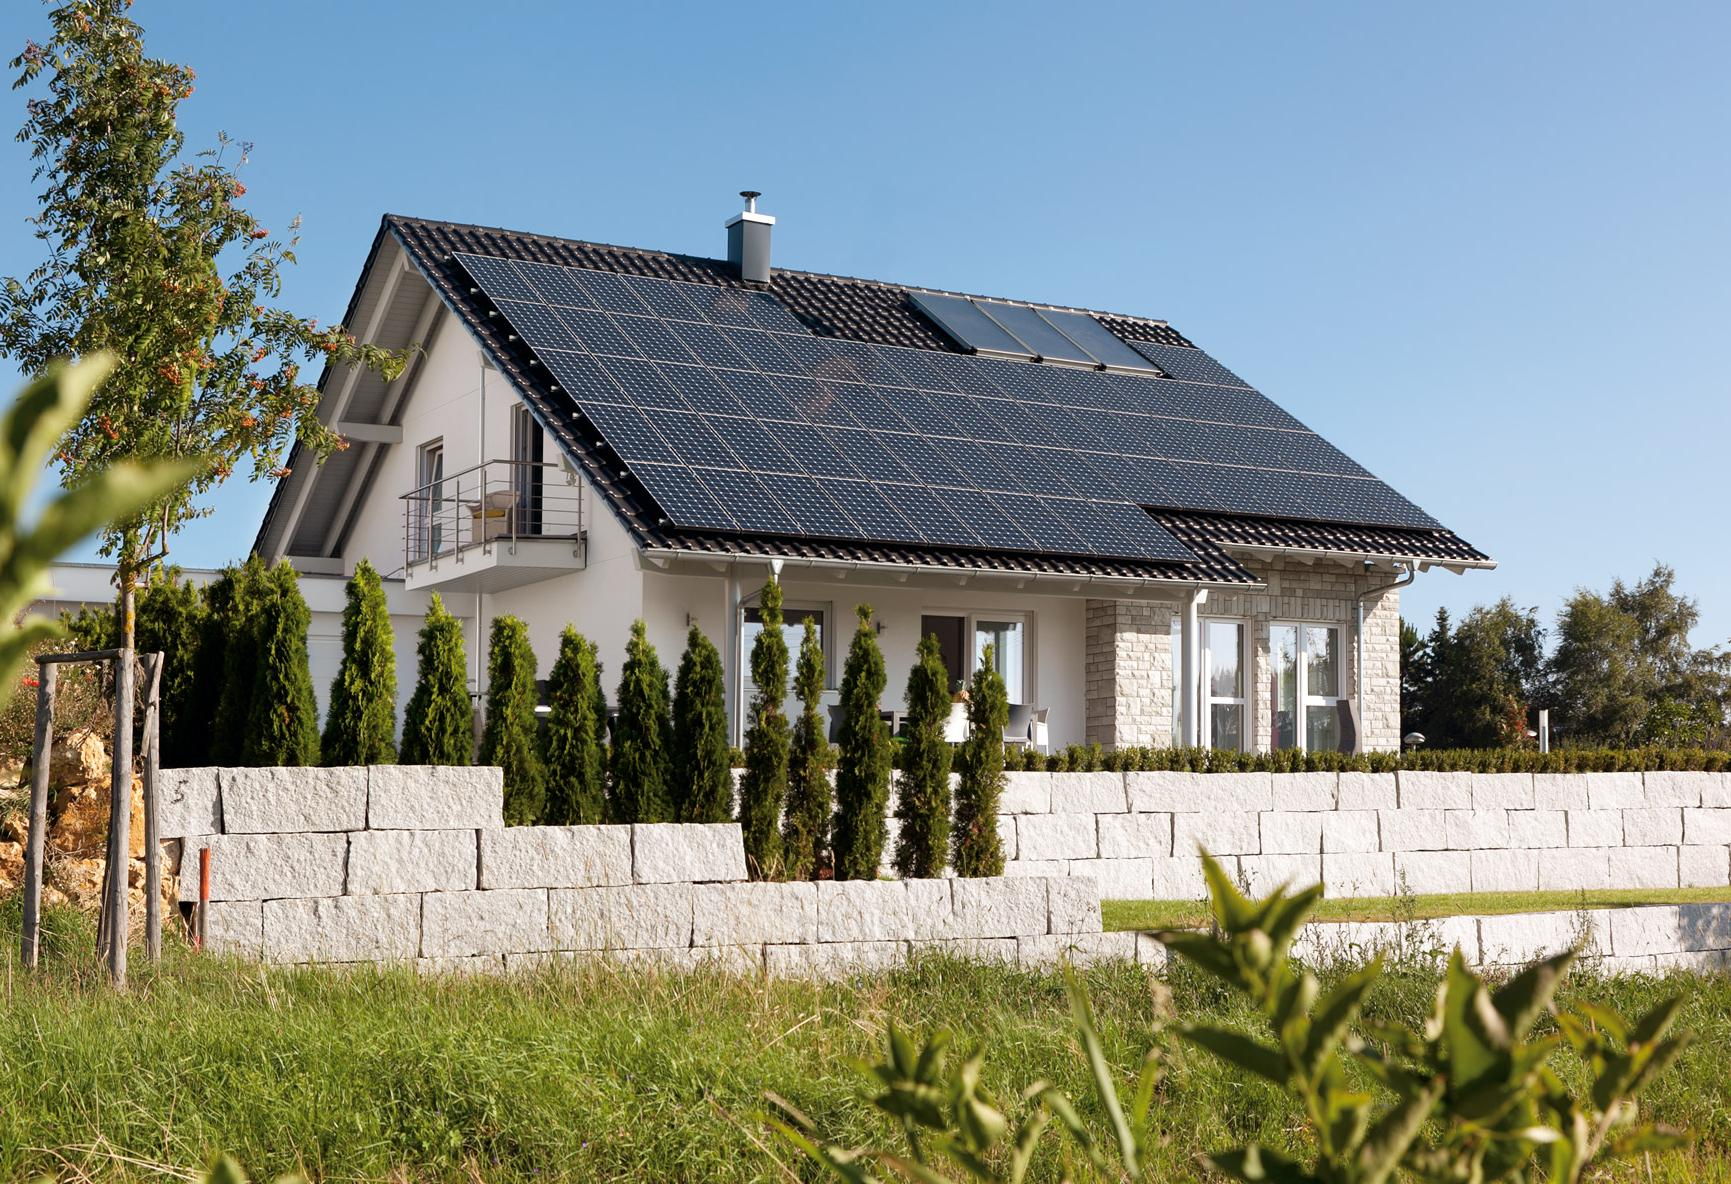 Plus energy house with in-roof photovoltaic system